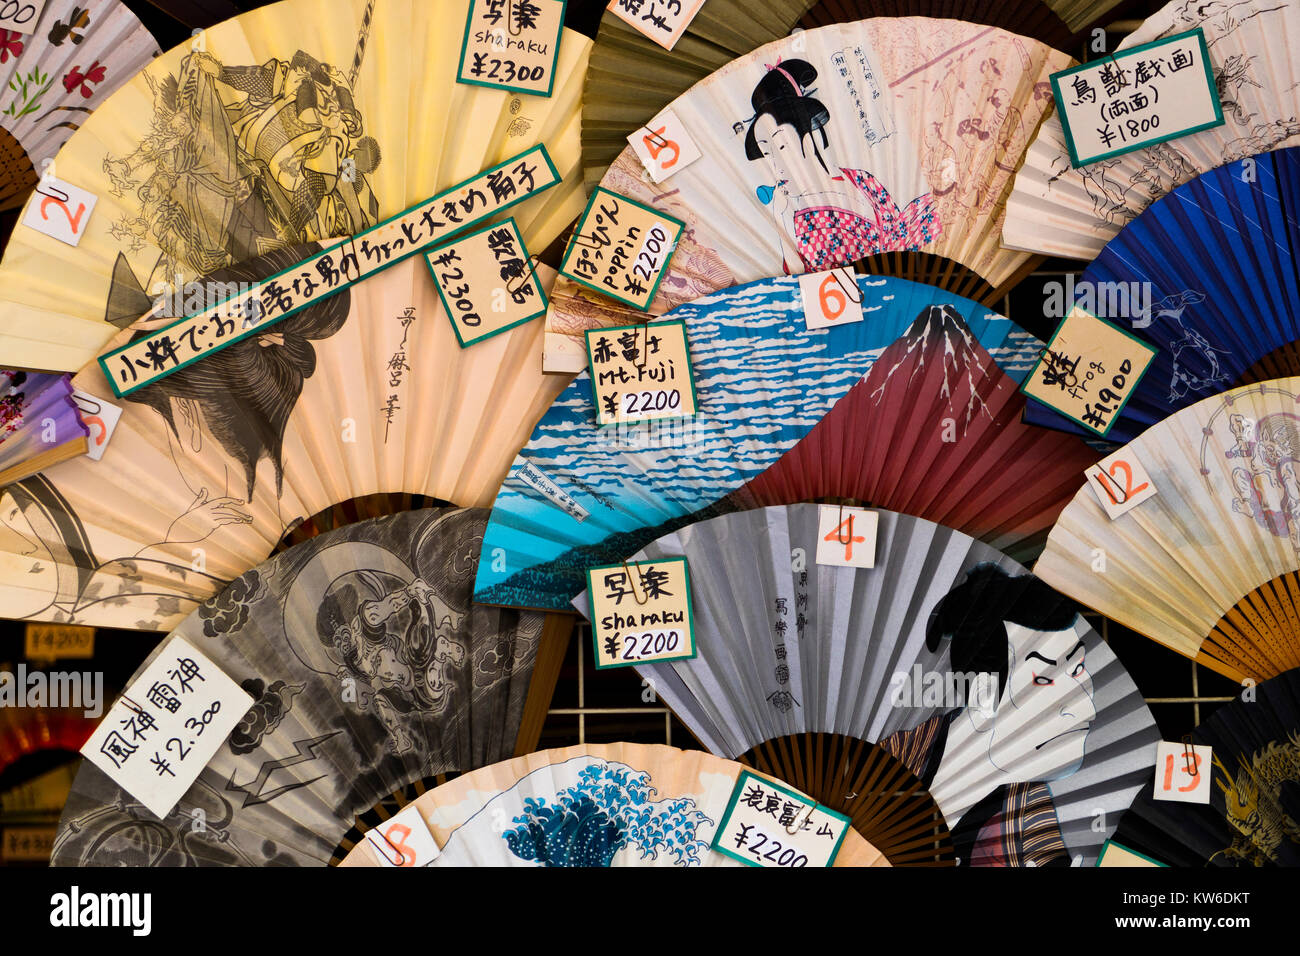 Tokyo - Japan, June 19, 2017:  Shop window with traditional colorful hand fans and price tags - Stock Image